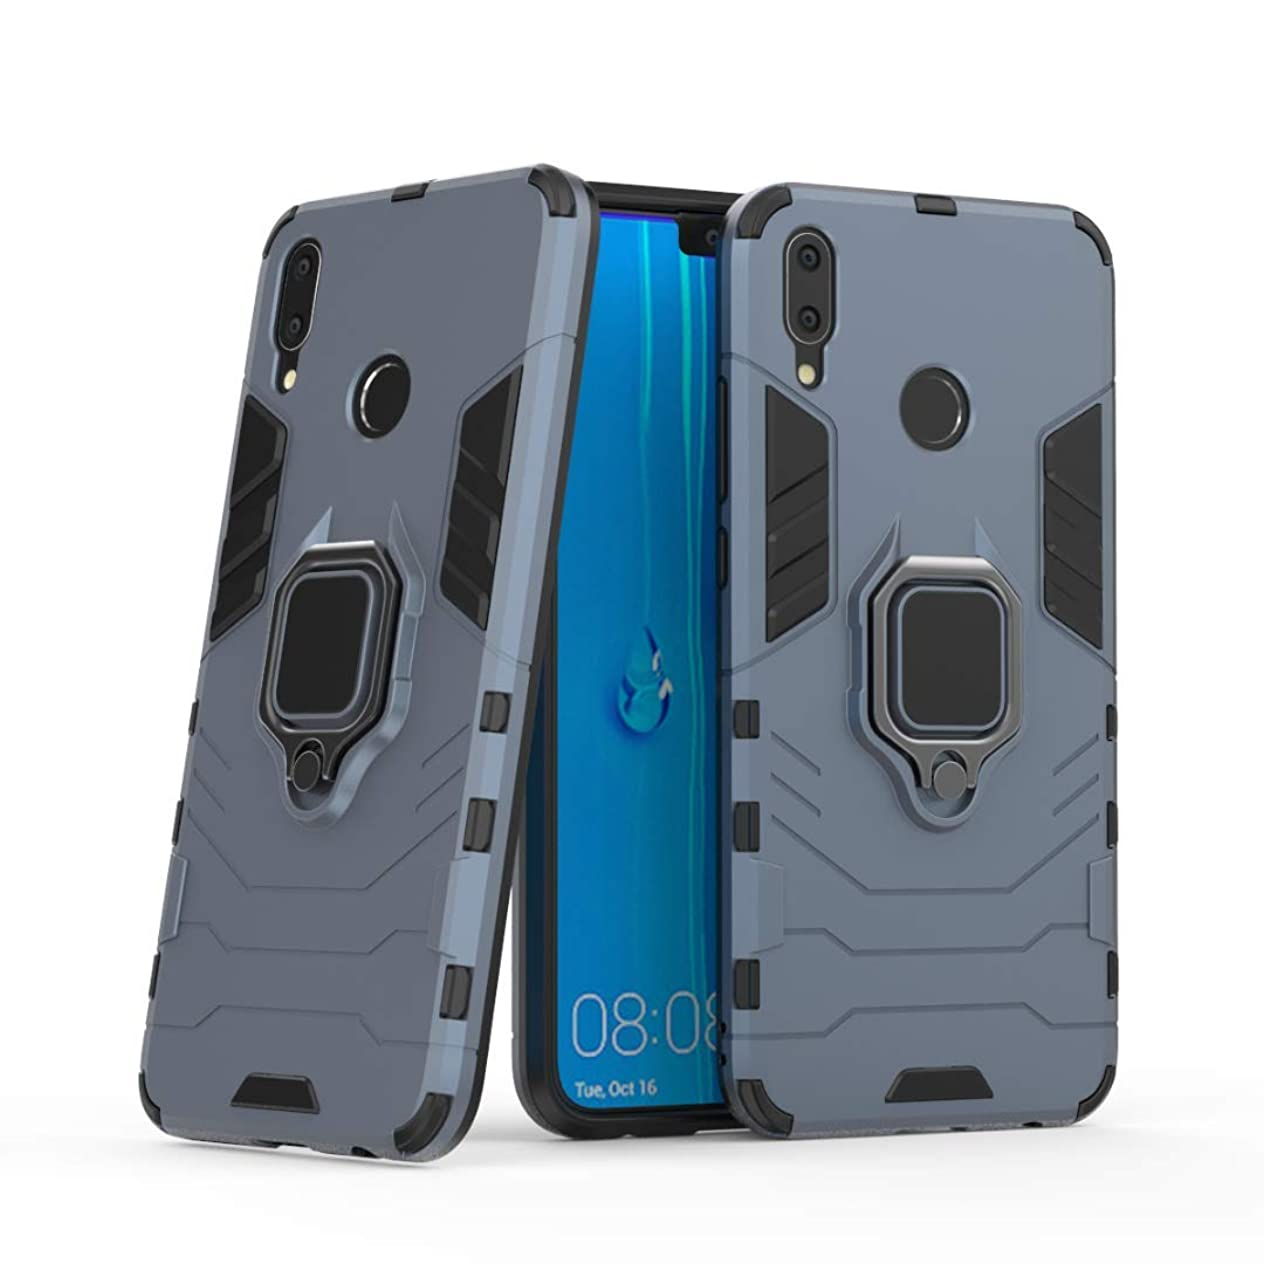 Lantier 360 Degree Rotation Durable Armor Ring Kickstand Holder and Full Protective Shockproof Case for Huawei Y9 (2019)/Enjoy 9 Plus Dark Blue lqpsovfz256